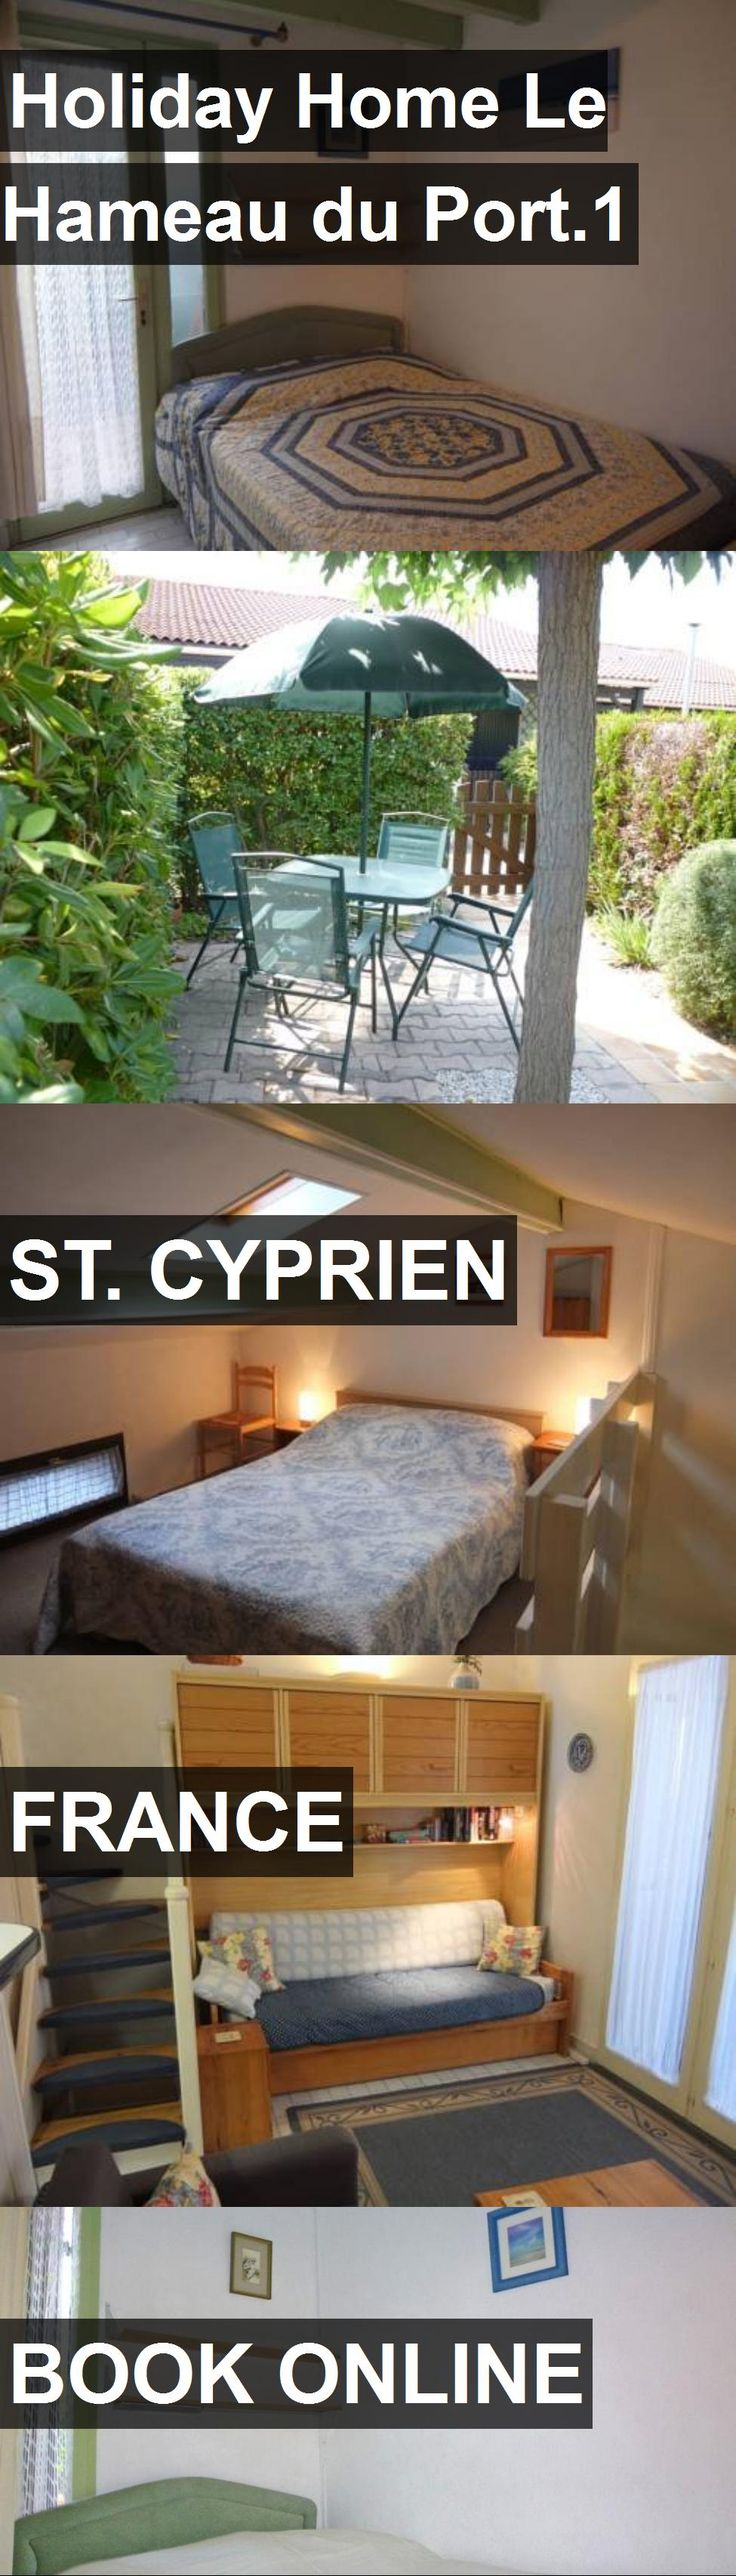 Hotel Holiday Home Le Hameau du Port.1 in St. Cyprien, France. For more information, photos, reviews and best prices please follow the link. #France #St.Cyprien #travel #vacation #hotel